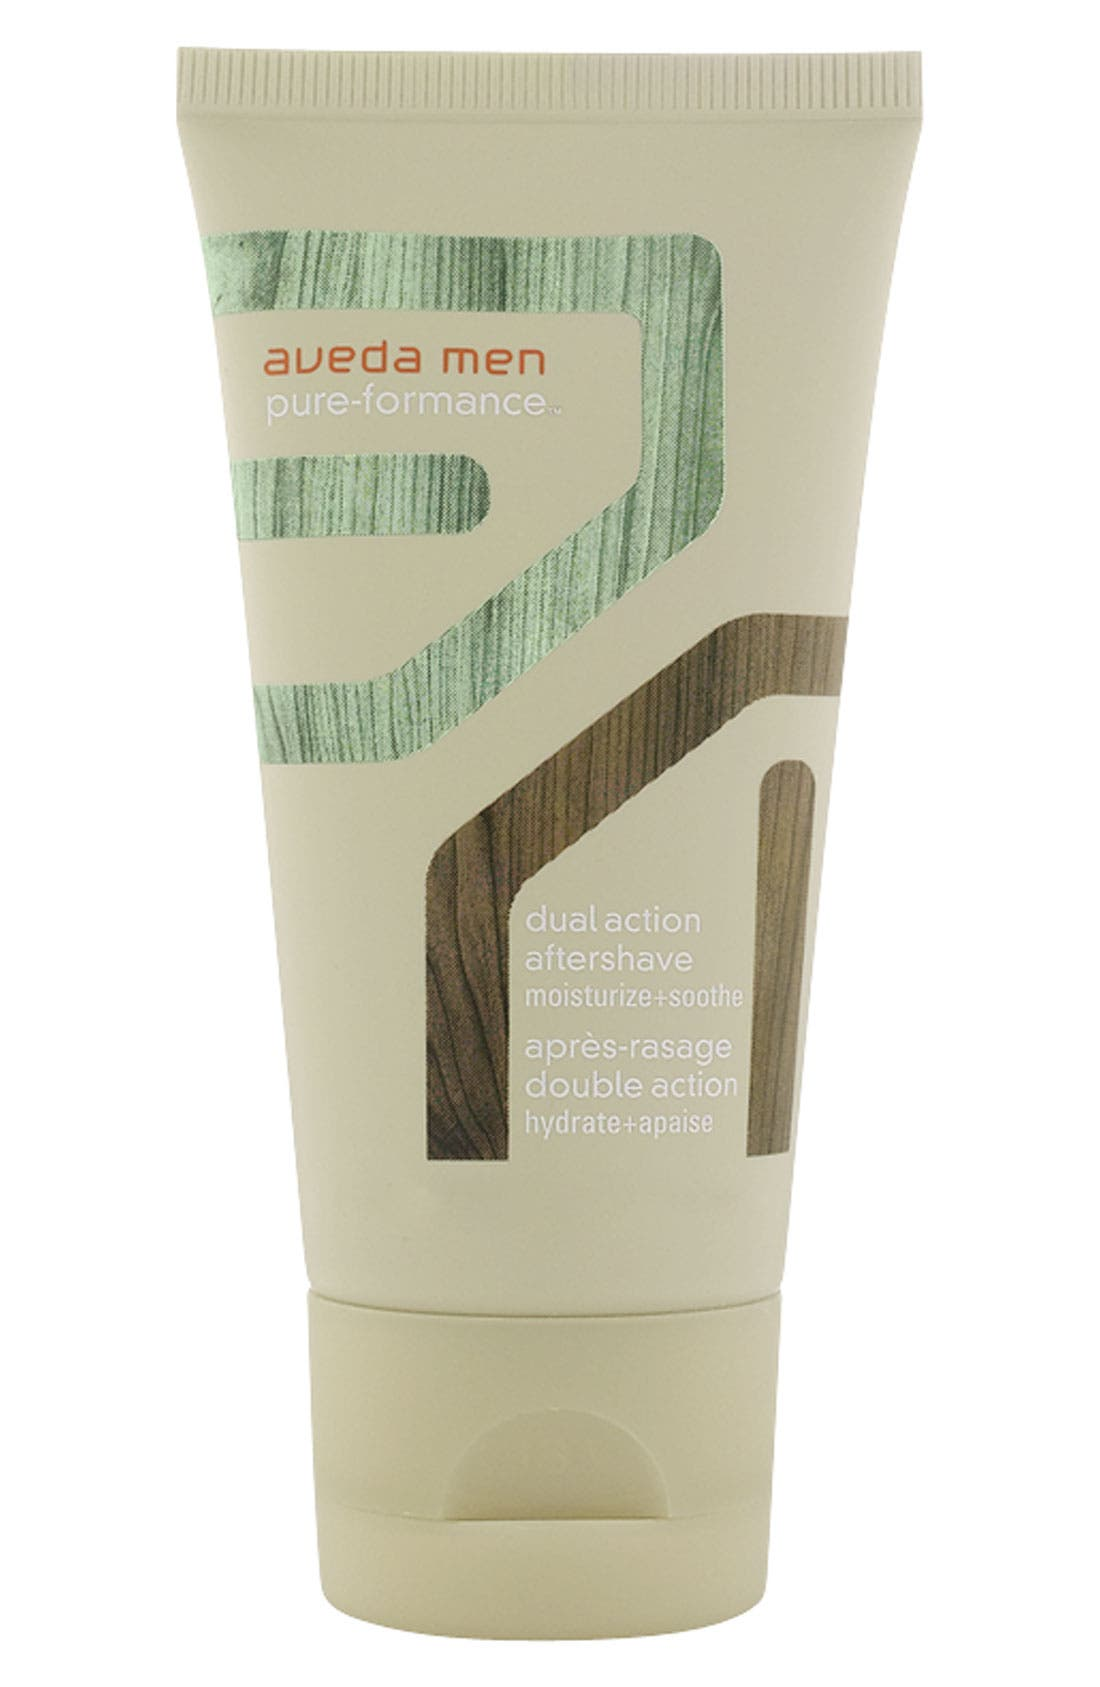 AVEDA Men pure-formance<sup>™</sup> Dual Action Aftershave, Main, color, NO COLOR